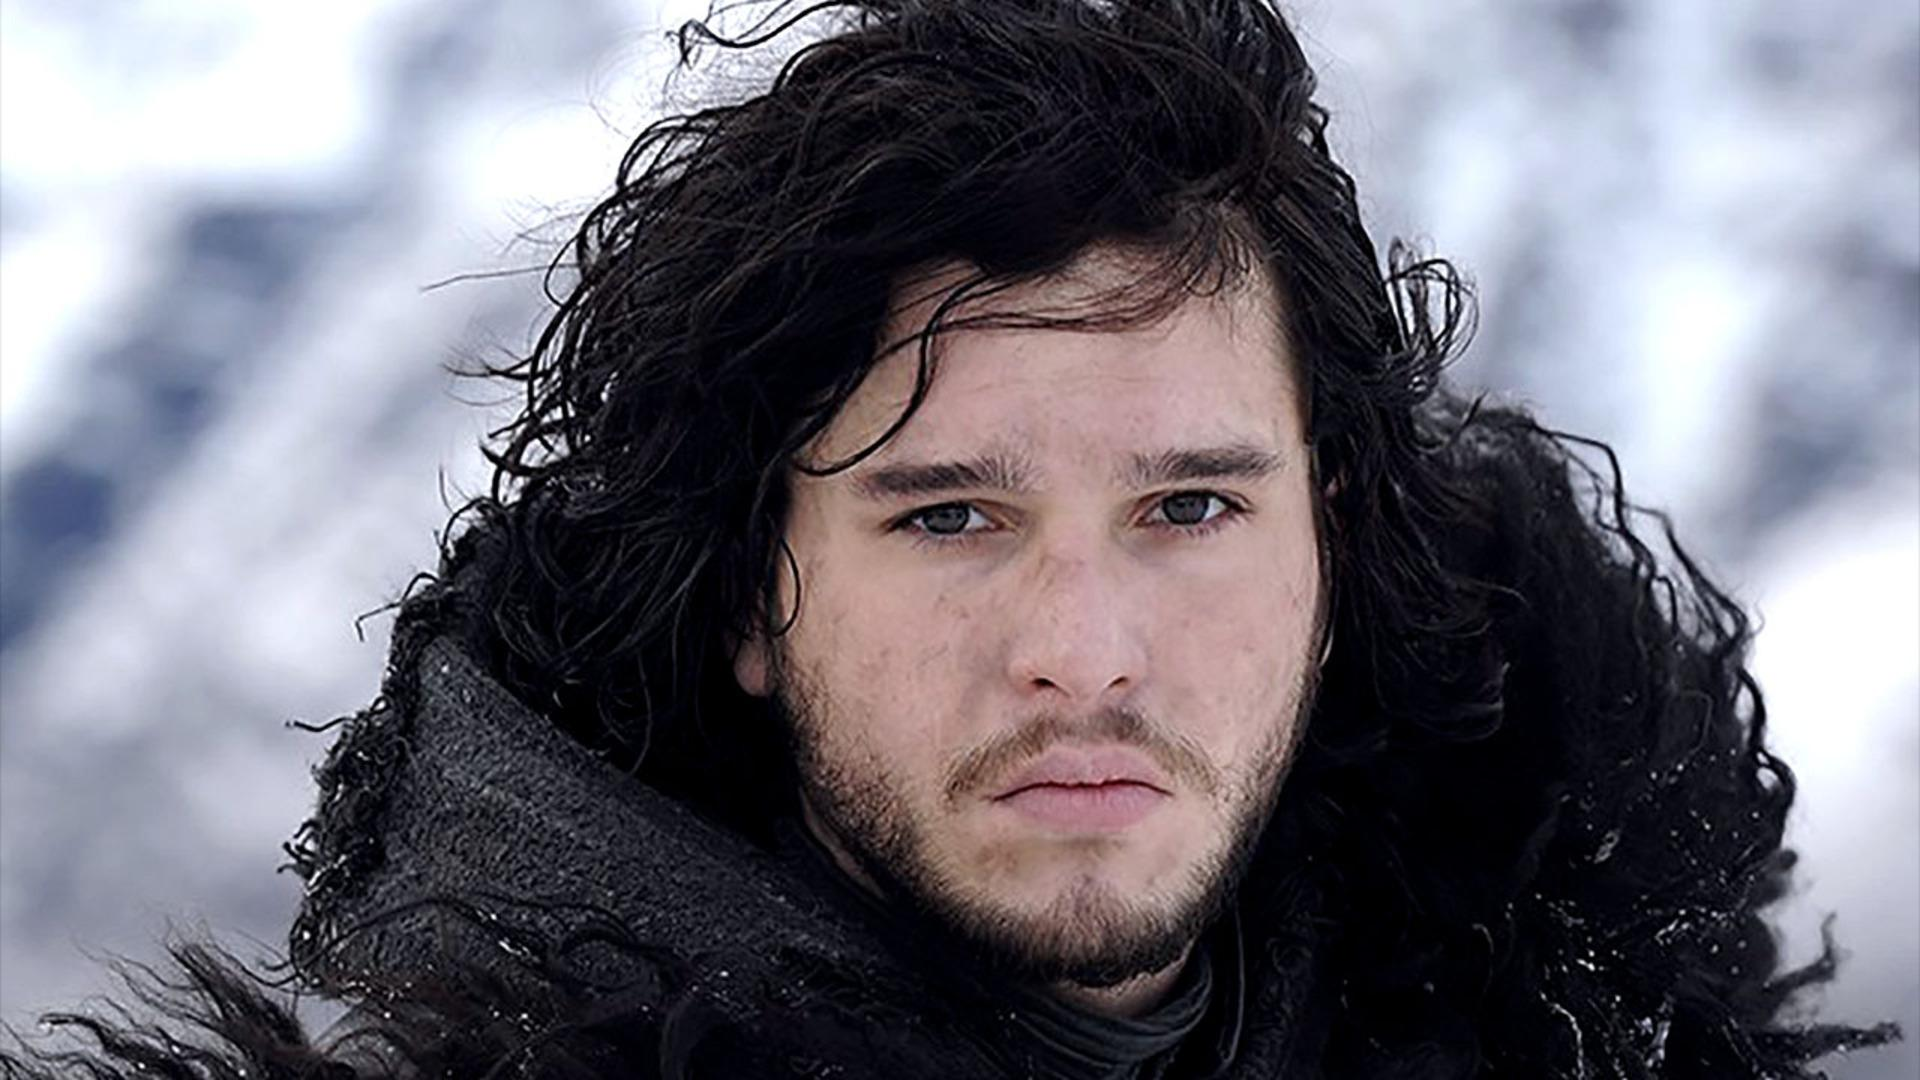 Kit Harrington Issues Apology After Last Night's Episode of 'Game of Thrones'